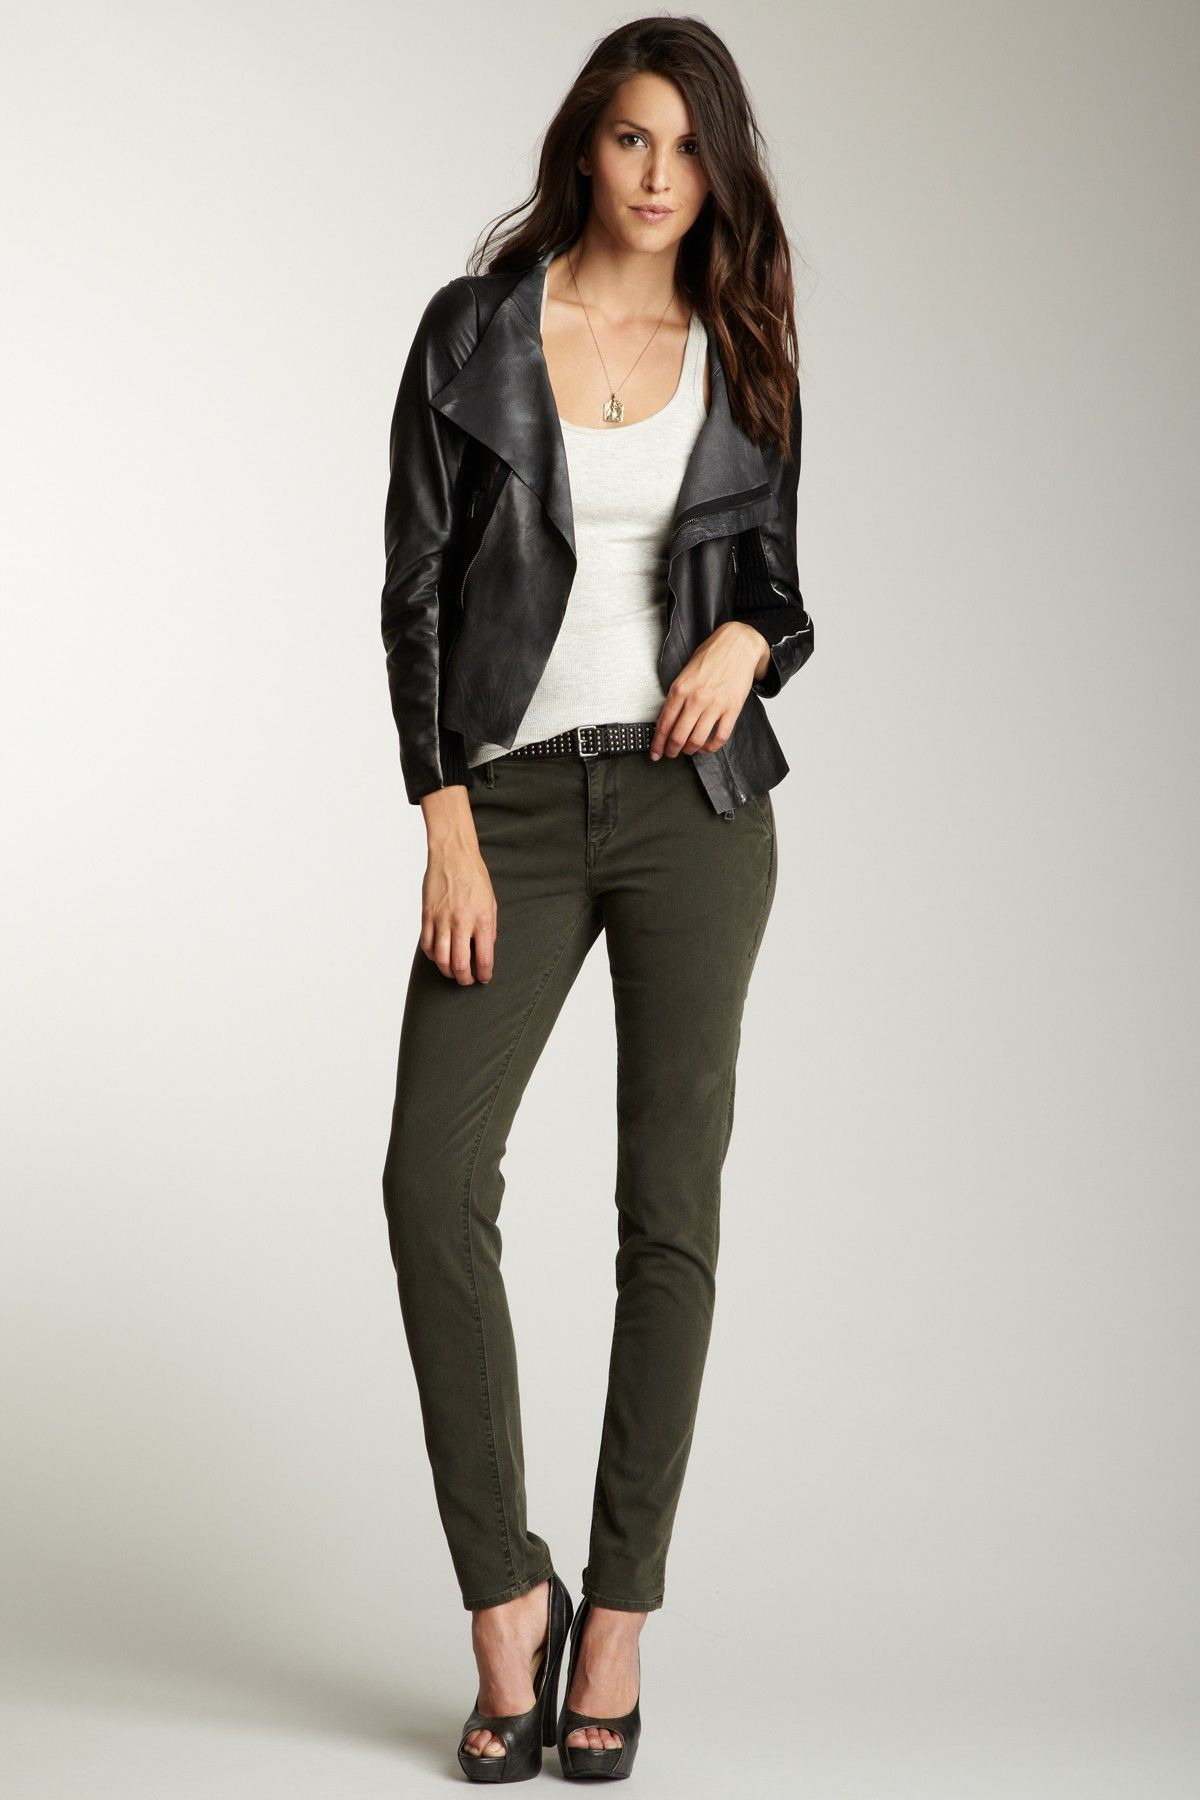 Loving all of the AWESOME army green skinnies looks I am